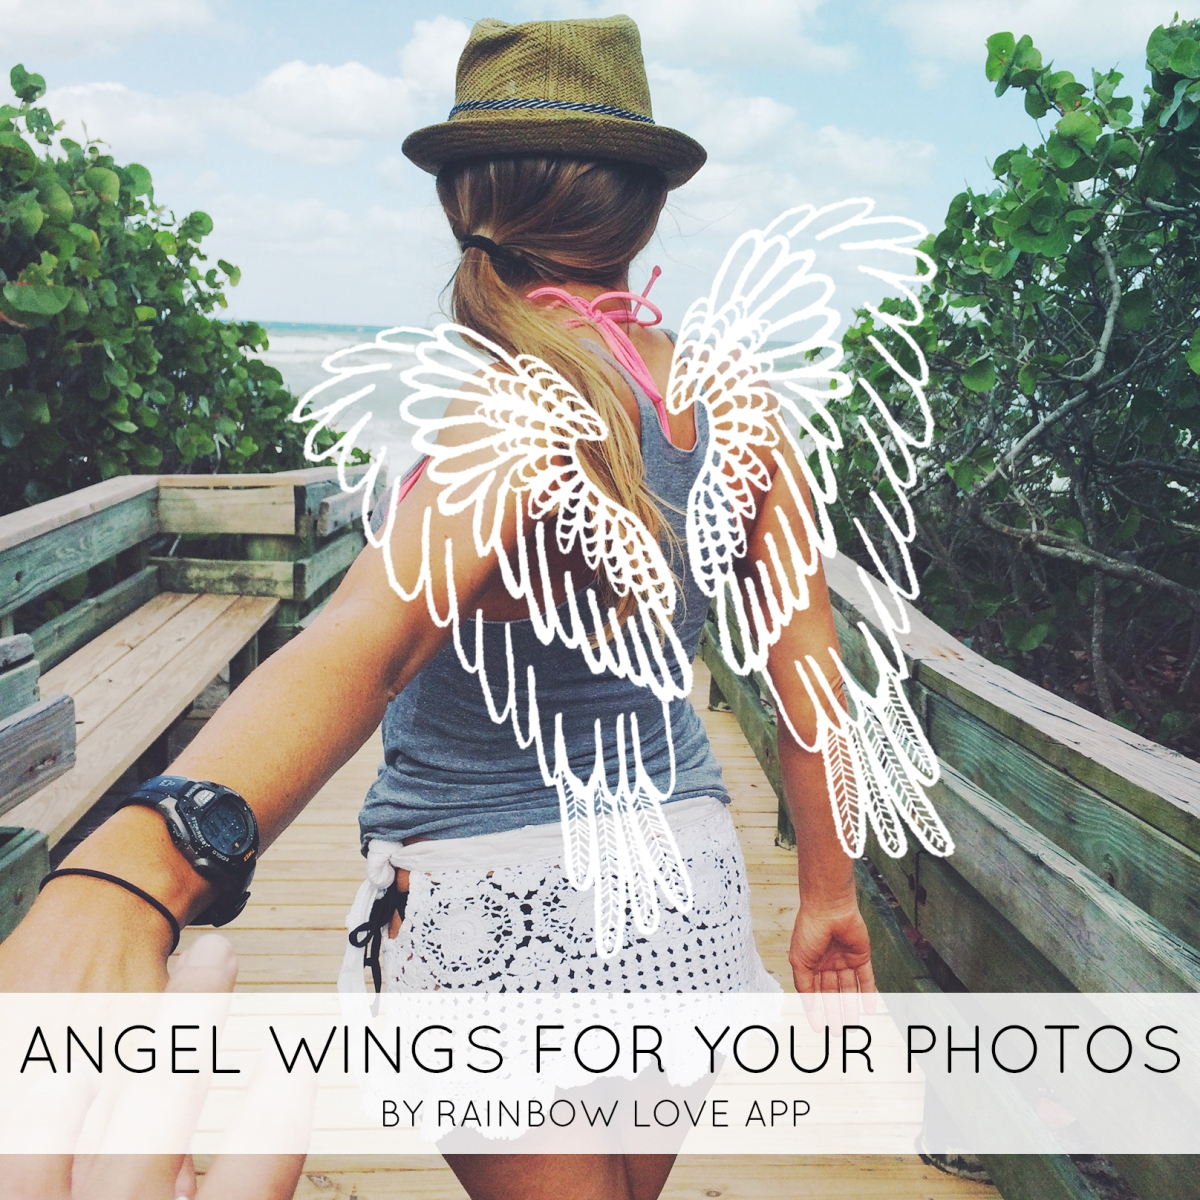 angel-wings-for-your-photos-angel-effect-photo-editor-rainbow-love-app-angels-wing-photo-editing-art-and-filters-best-rainbow-love-app-15